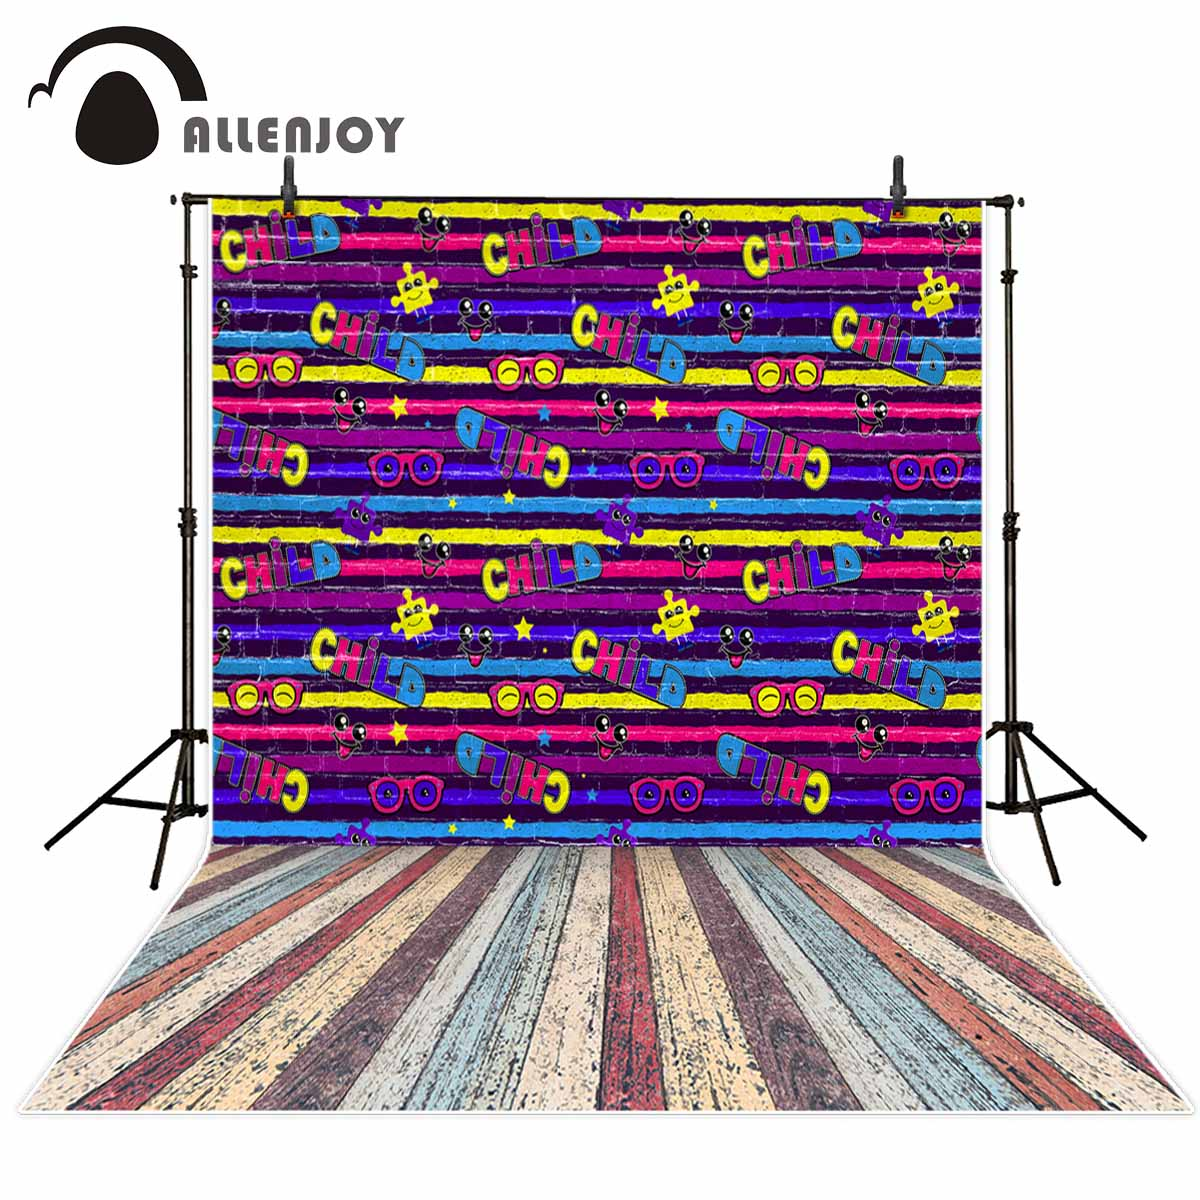 Allenjoy Cool kids background stripes wooden floor background for photography fond studio photo photography studio funds party